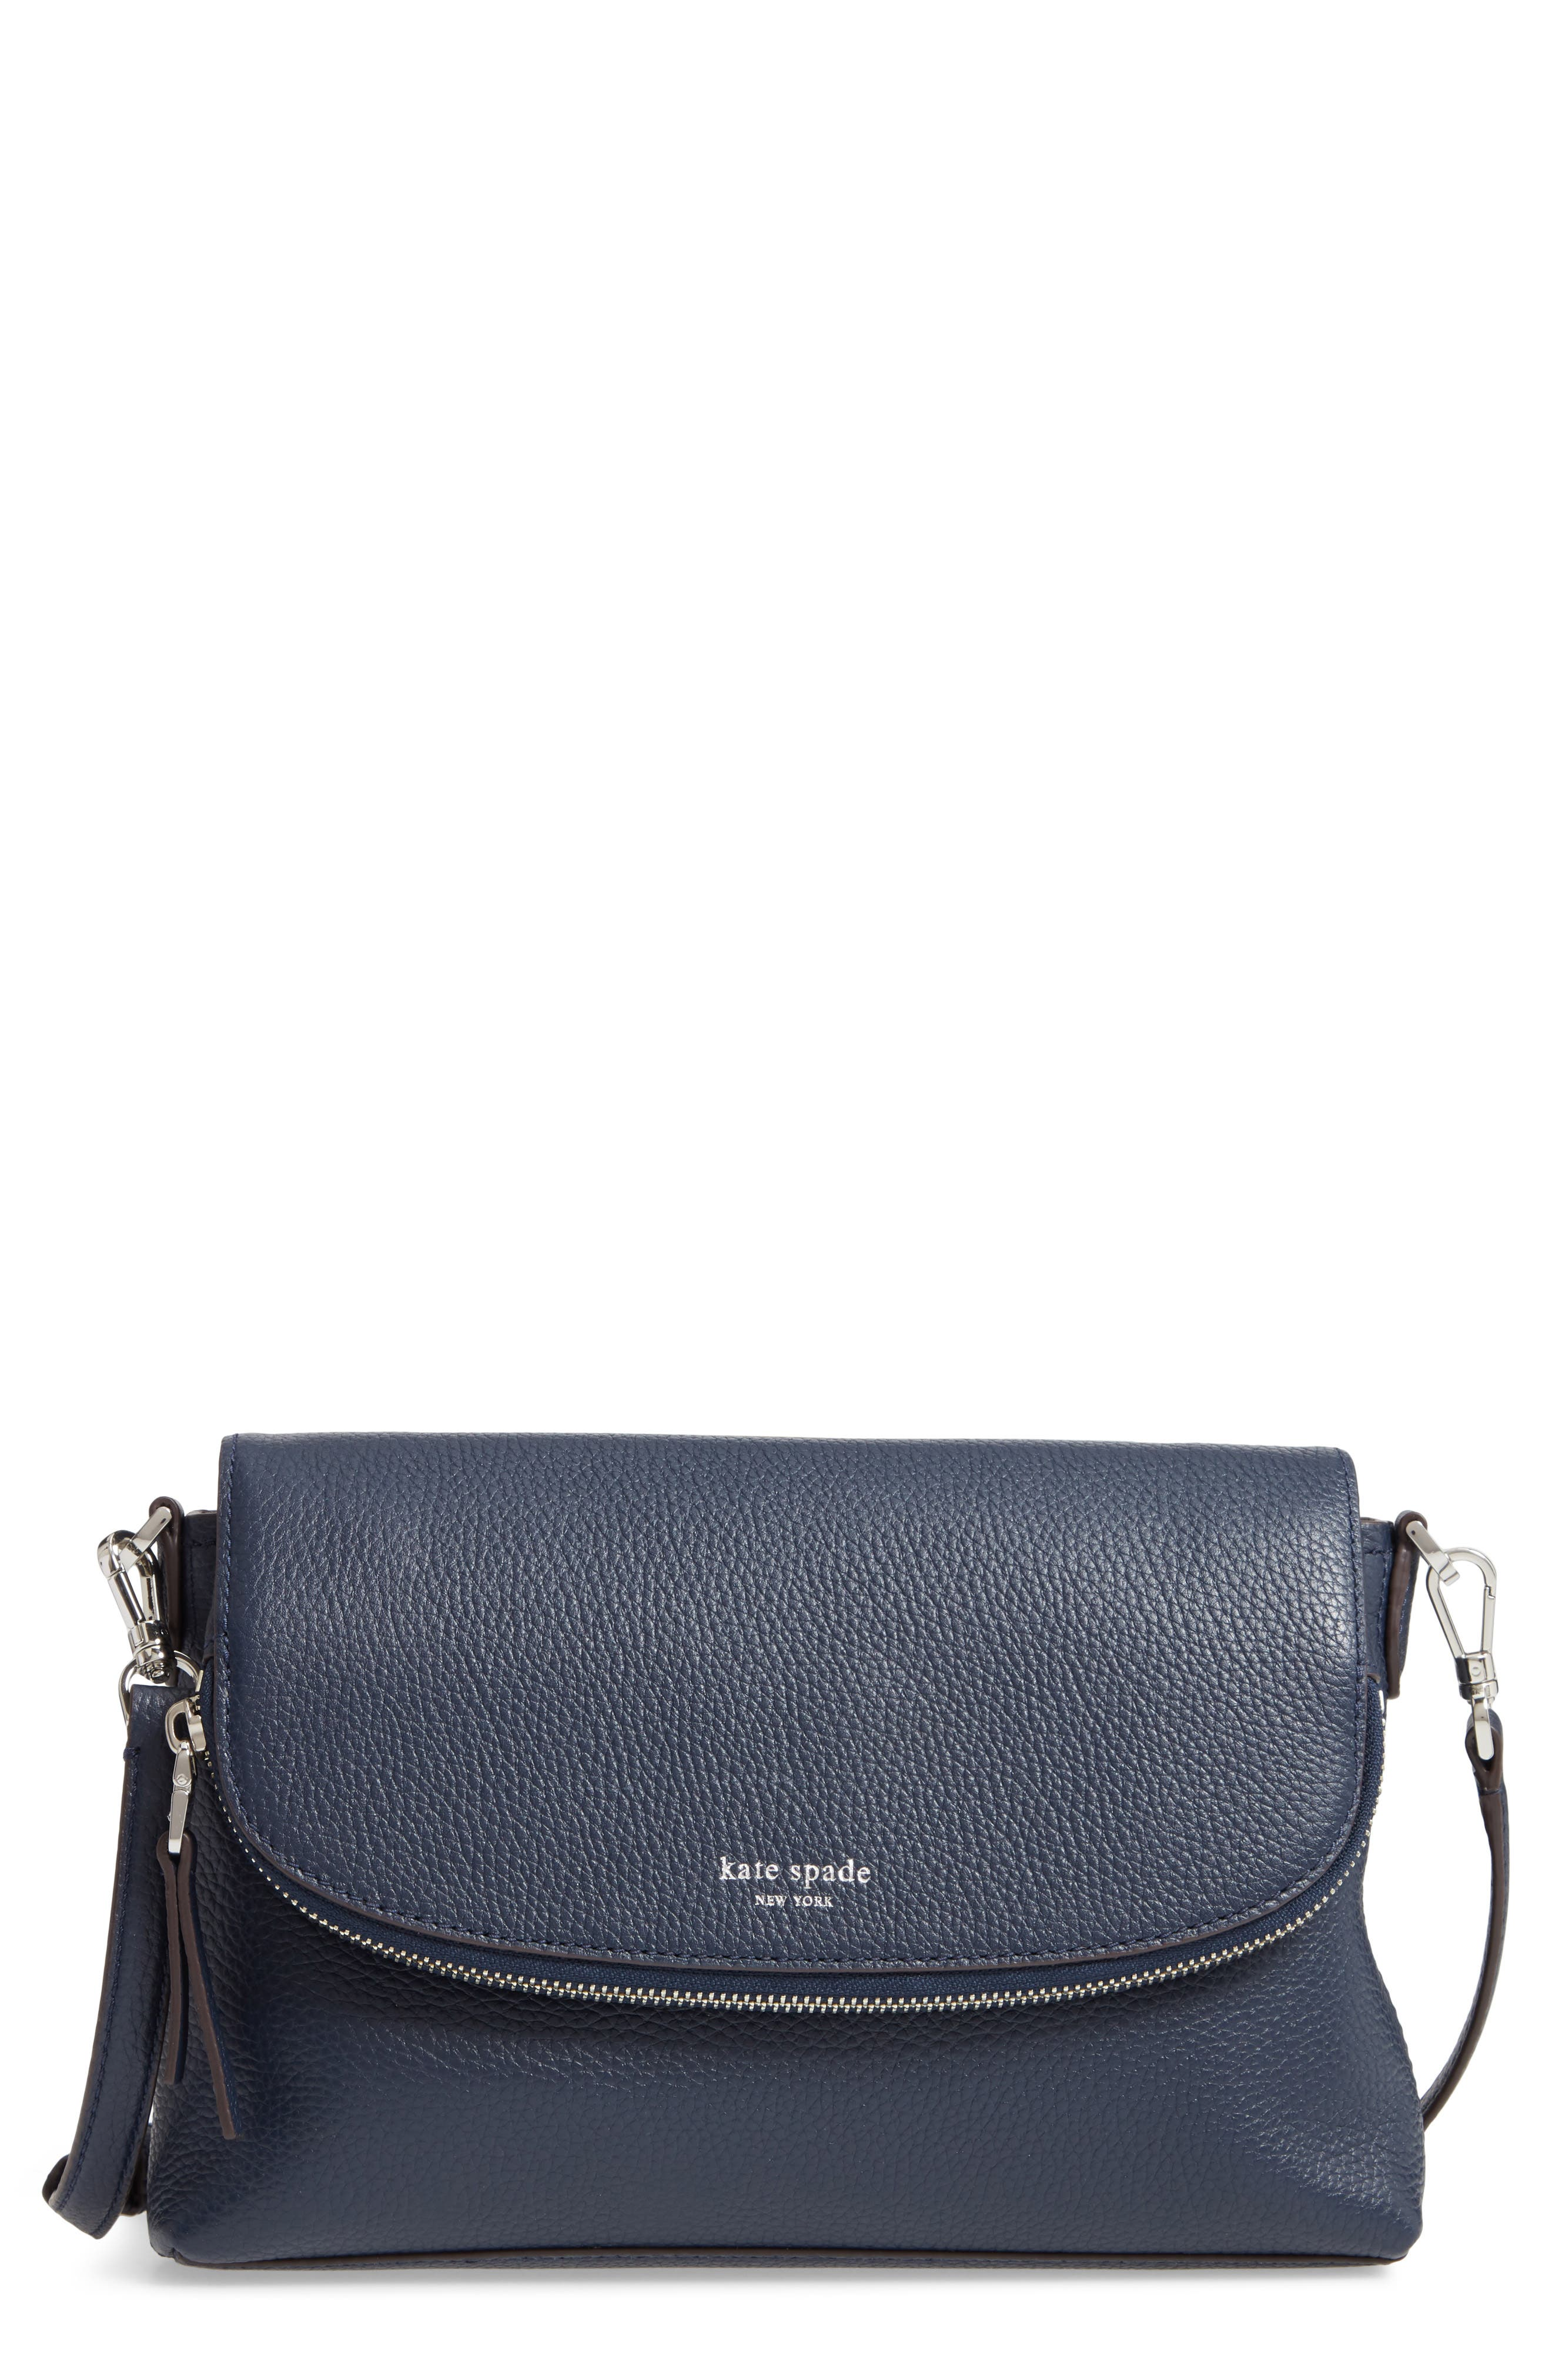 65bfc644526b8 Women s Kate Spade New York New Arrivals  Clothing